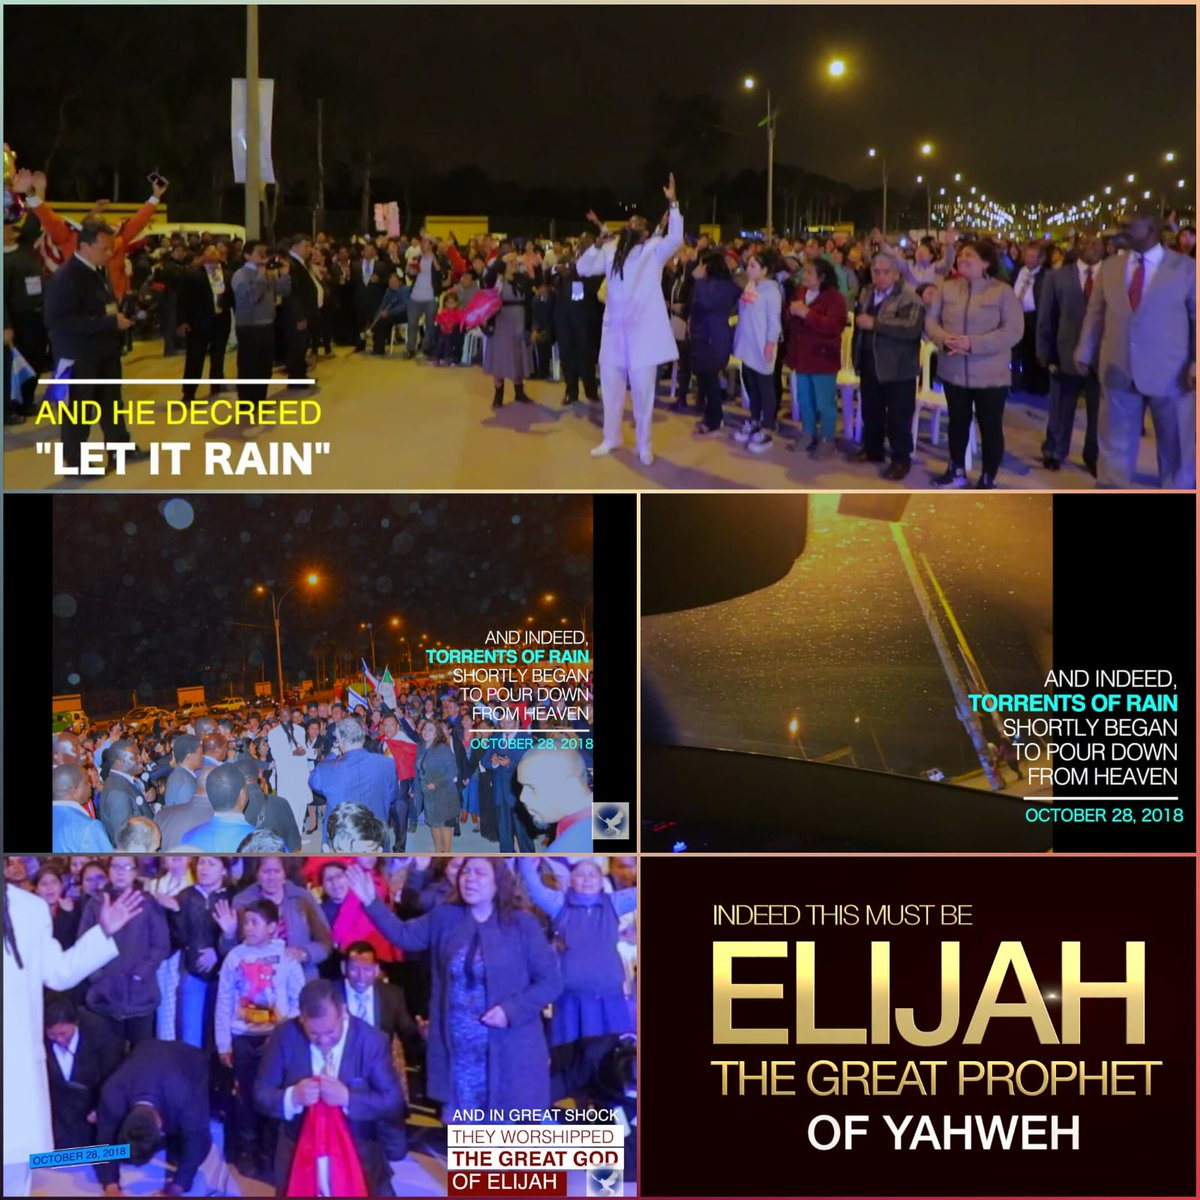 Friday last week but one, ELIJAH THE DREADFUL PROPHET OF JEHOVAH, was in Lima Peru, restoring the Altar of THE LORD. This was a repeat of 1Kings 18.. After the restoration of the Altar, HE commanded HEAVEN to open and it really rained immensely! #FlashBackFriday #TheDaysOfElijah<br>http://pic.twitter.com/giBY5KLsGz